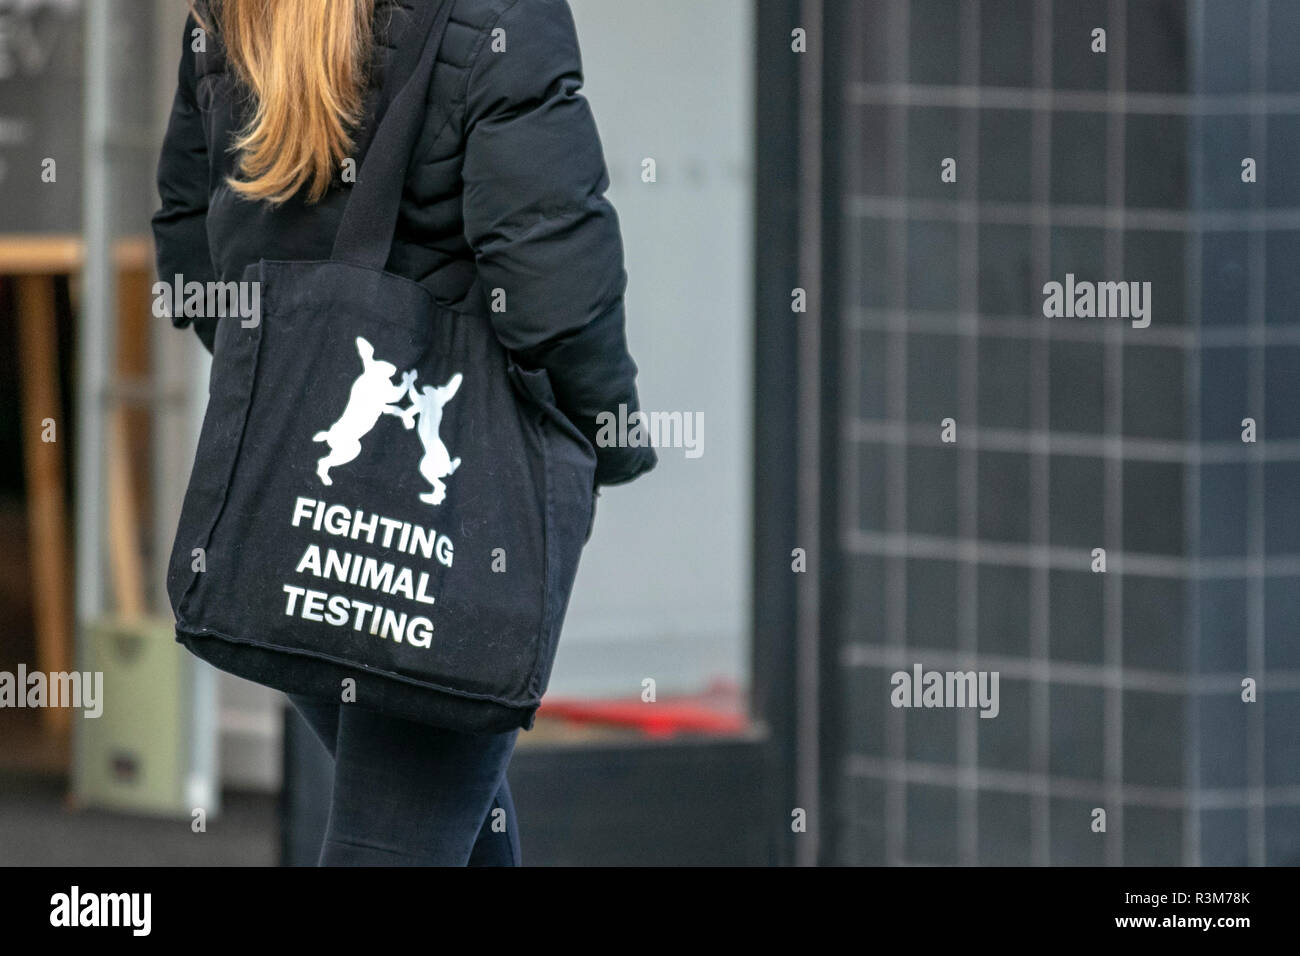 Southport, Merseyside, UK. 24th November, 2018. Vegan Woman in town centre against science, medicine, animal welfare, animal rights, ethics, animal experimentation, animal research,  Vegetarianism, Credit: MediaWorldImages/AlamyLiveNews. - Stock Image